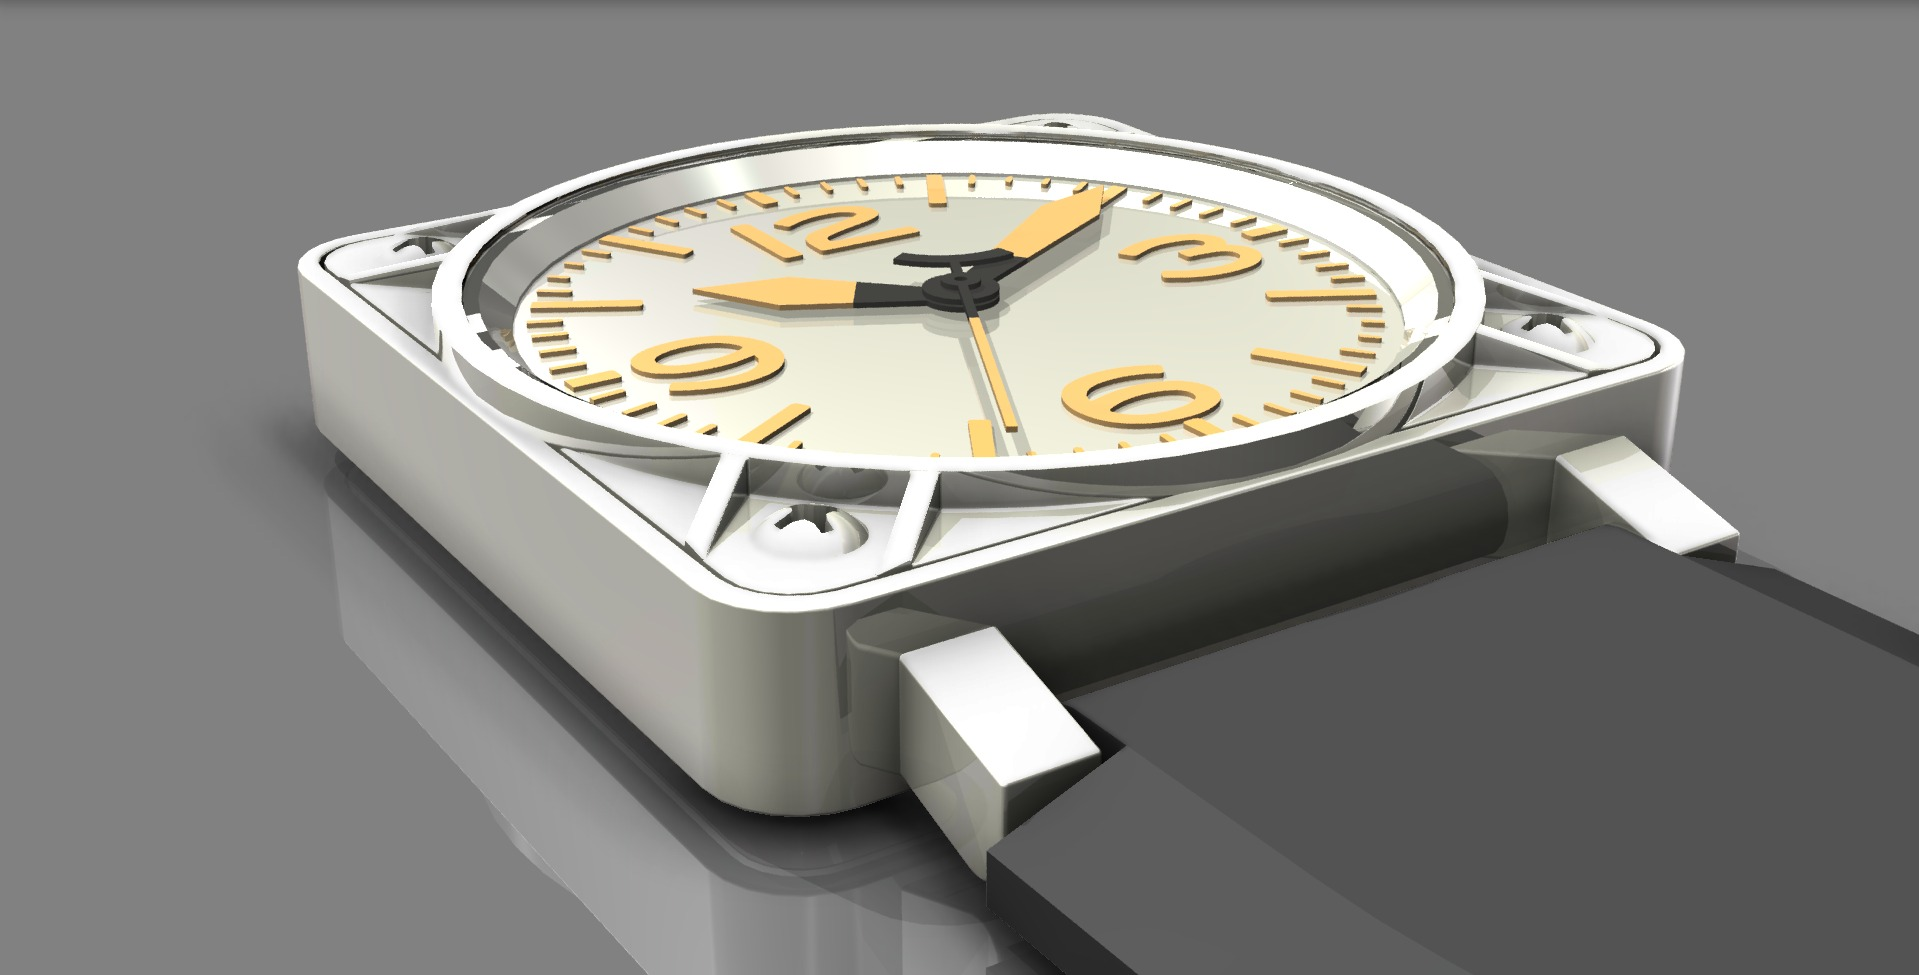 Replica_watch_assembled_angle_white